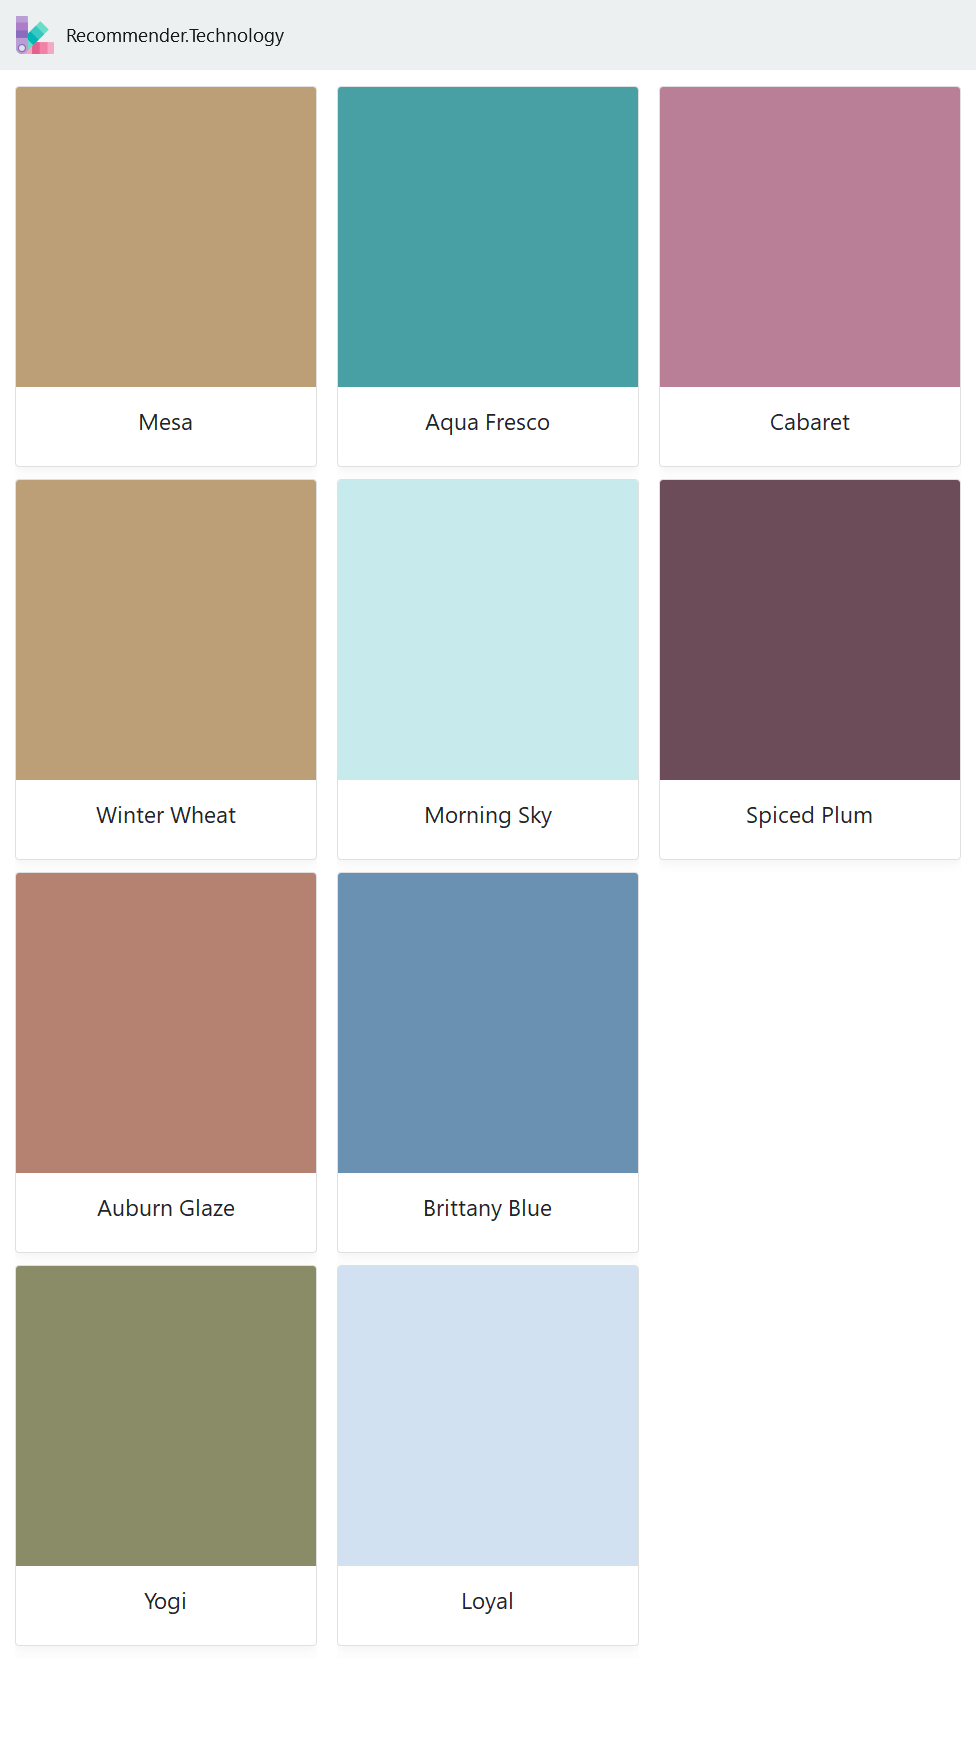 Mesa Winter Wheat Auburn Glaze Yogi Aqua Fresco Morning